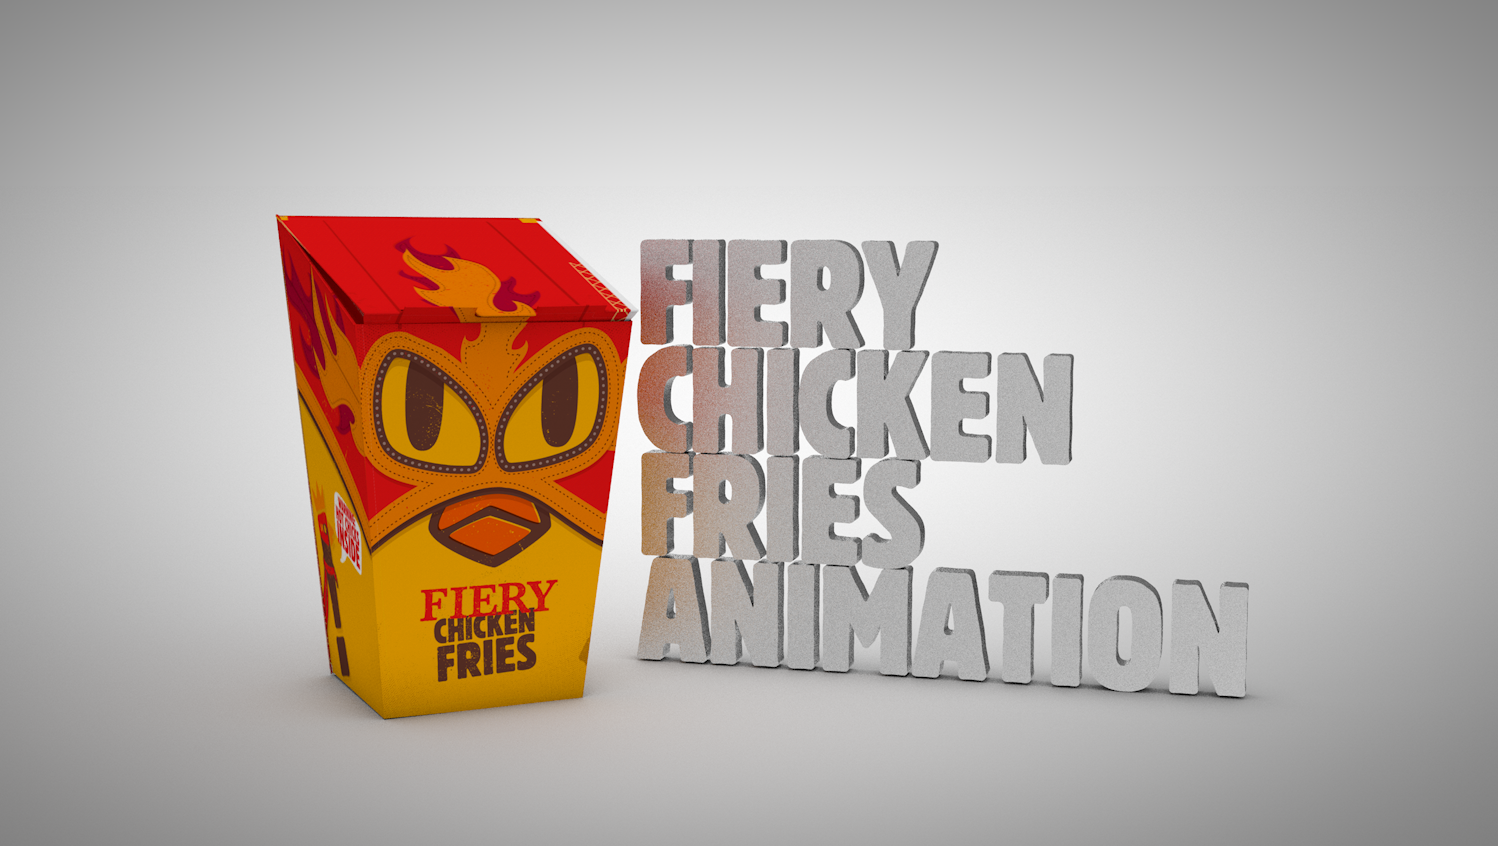 Check Out My Behance Project Fiery Chicken Fries Animations Https Www Behance Net Gallery 70548669 Fiery Chicken Fries Anim Fried Chicken Animation Fries